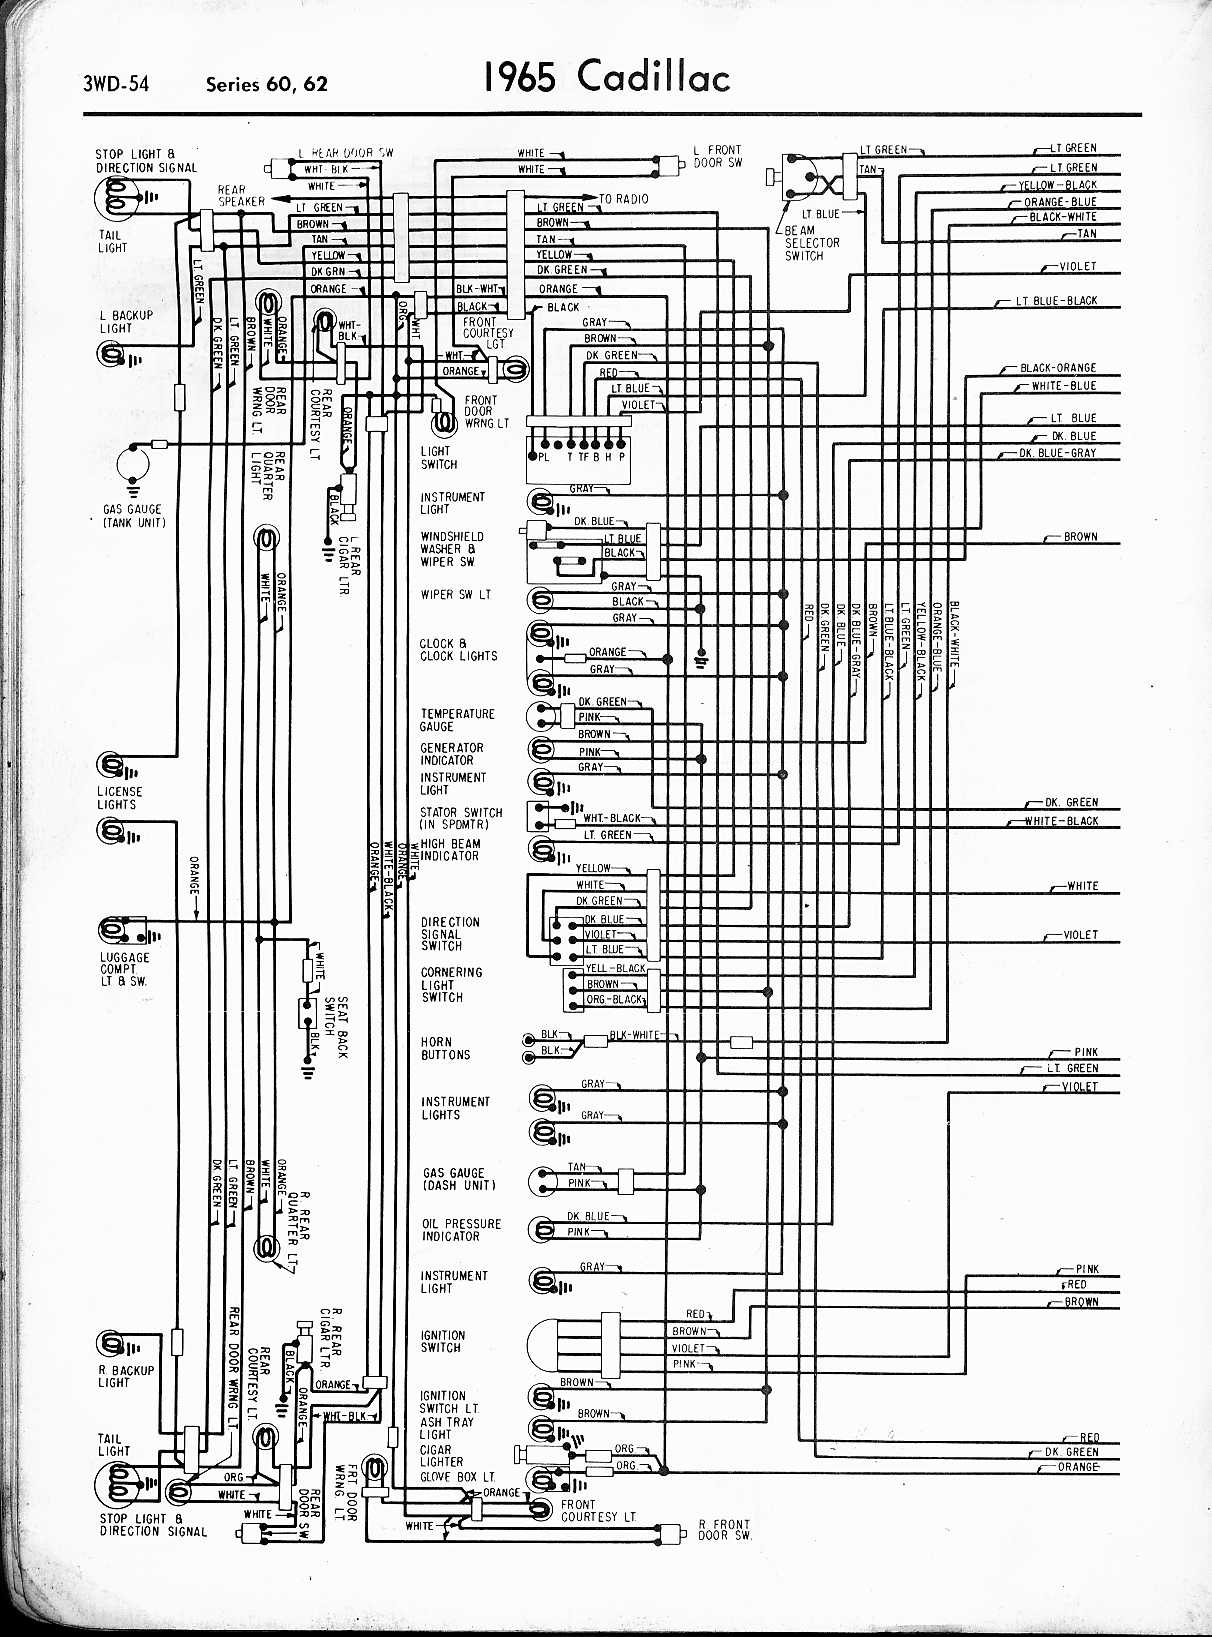 [ZTBE_9966]  66 Cadillac Wiring Diagram - 80cc Wiring Diagram for Wiring Diagram  Schematics | 1966 Cadillac Wiring Diagram |  | Wiring Diagram Schematics